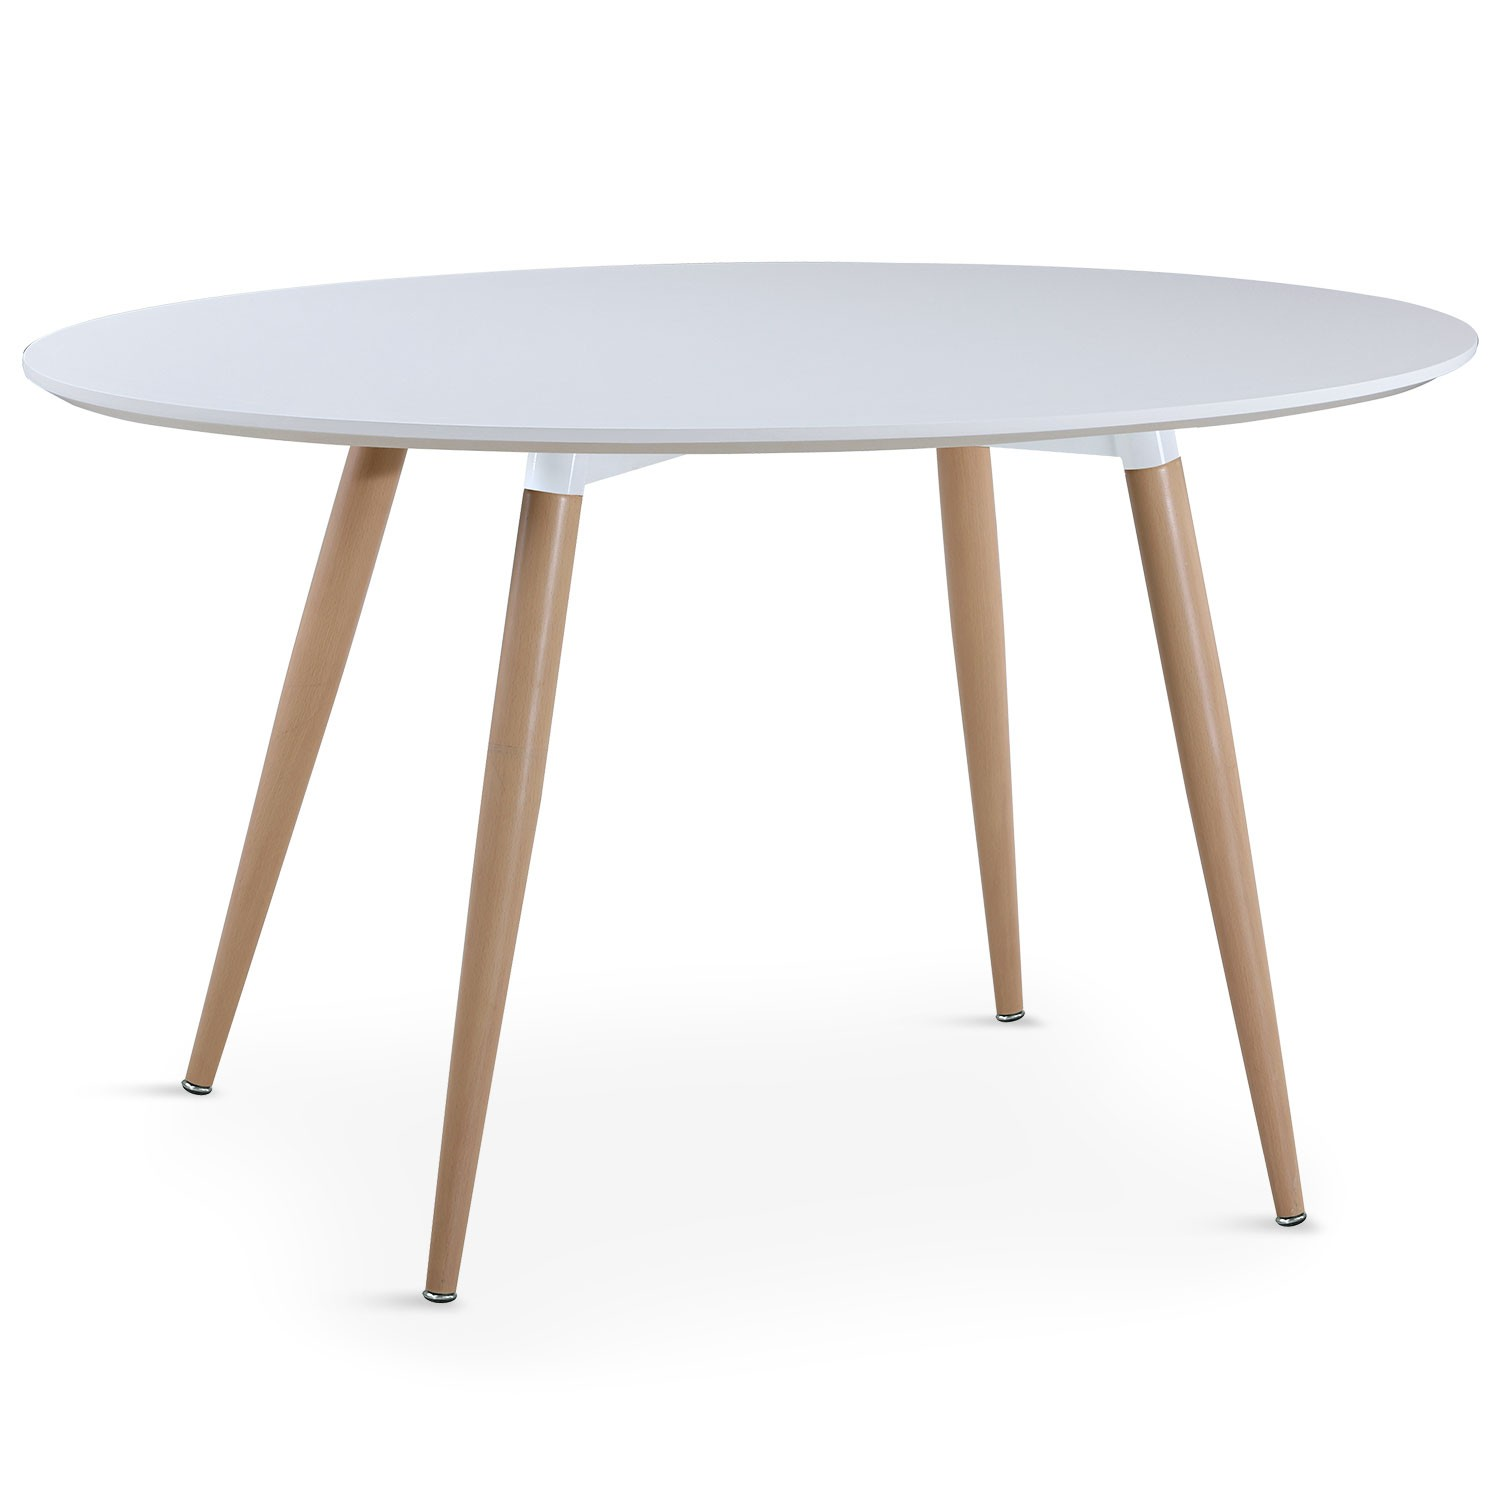 Table ovale scandinave lunea blanc table de repas for Table scandinave blanc